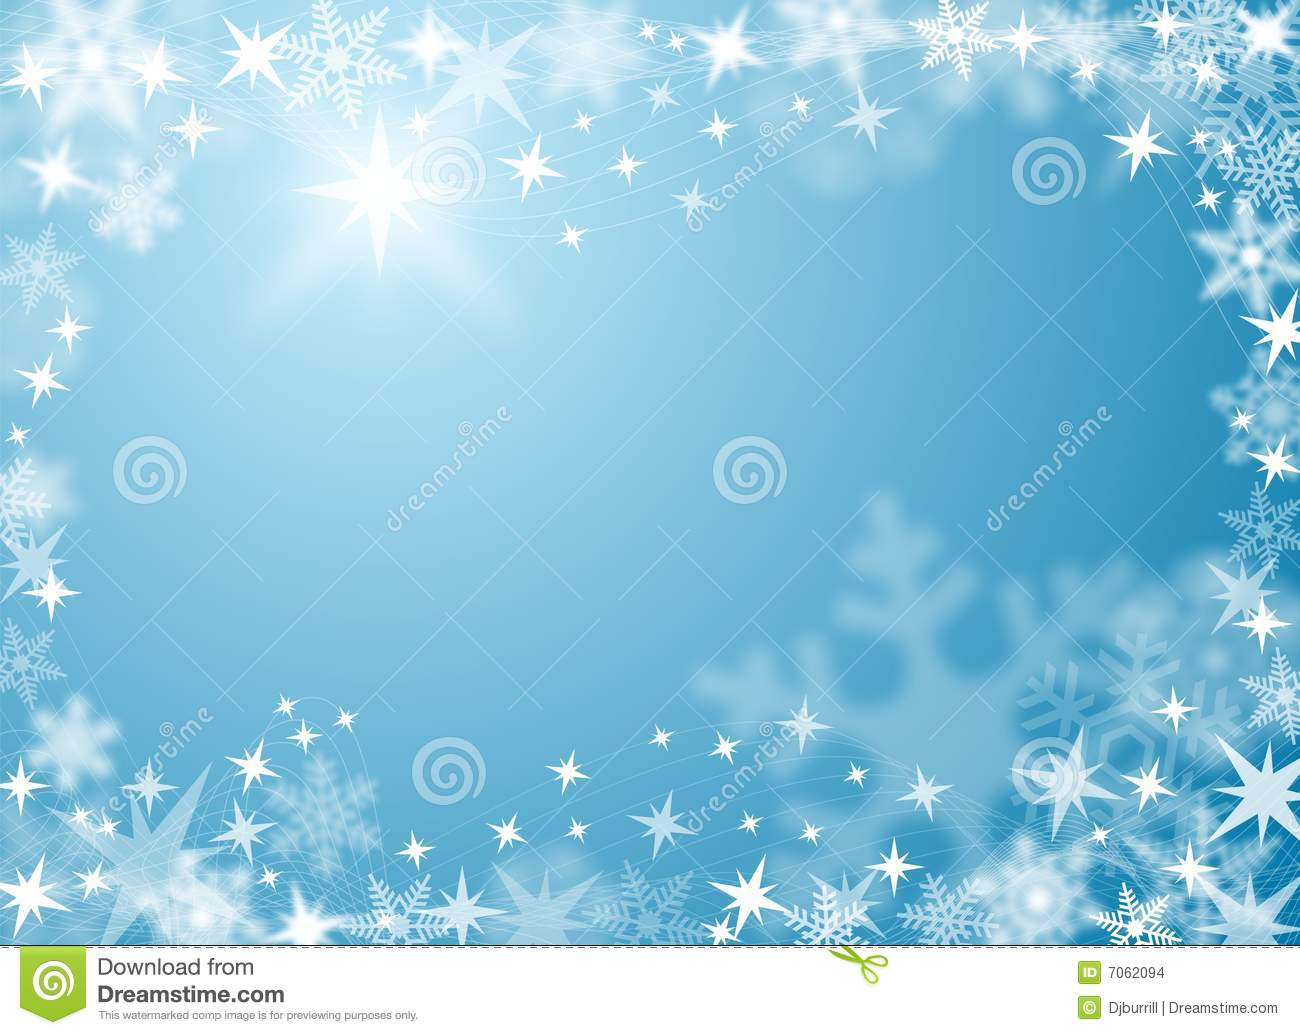 Festive Snow And Ice Background Stock Images - Image: 7062094